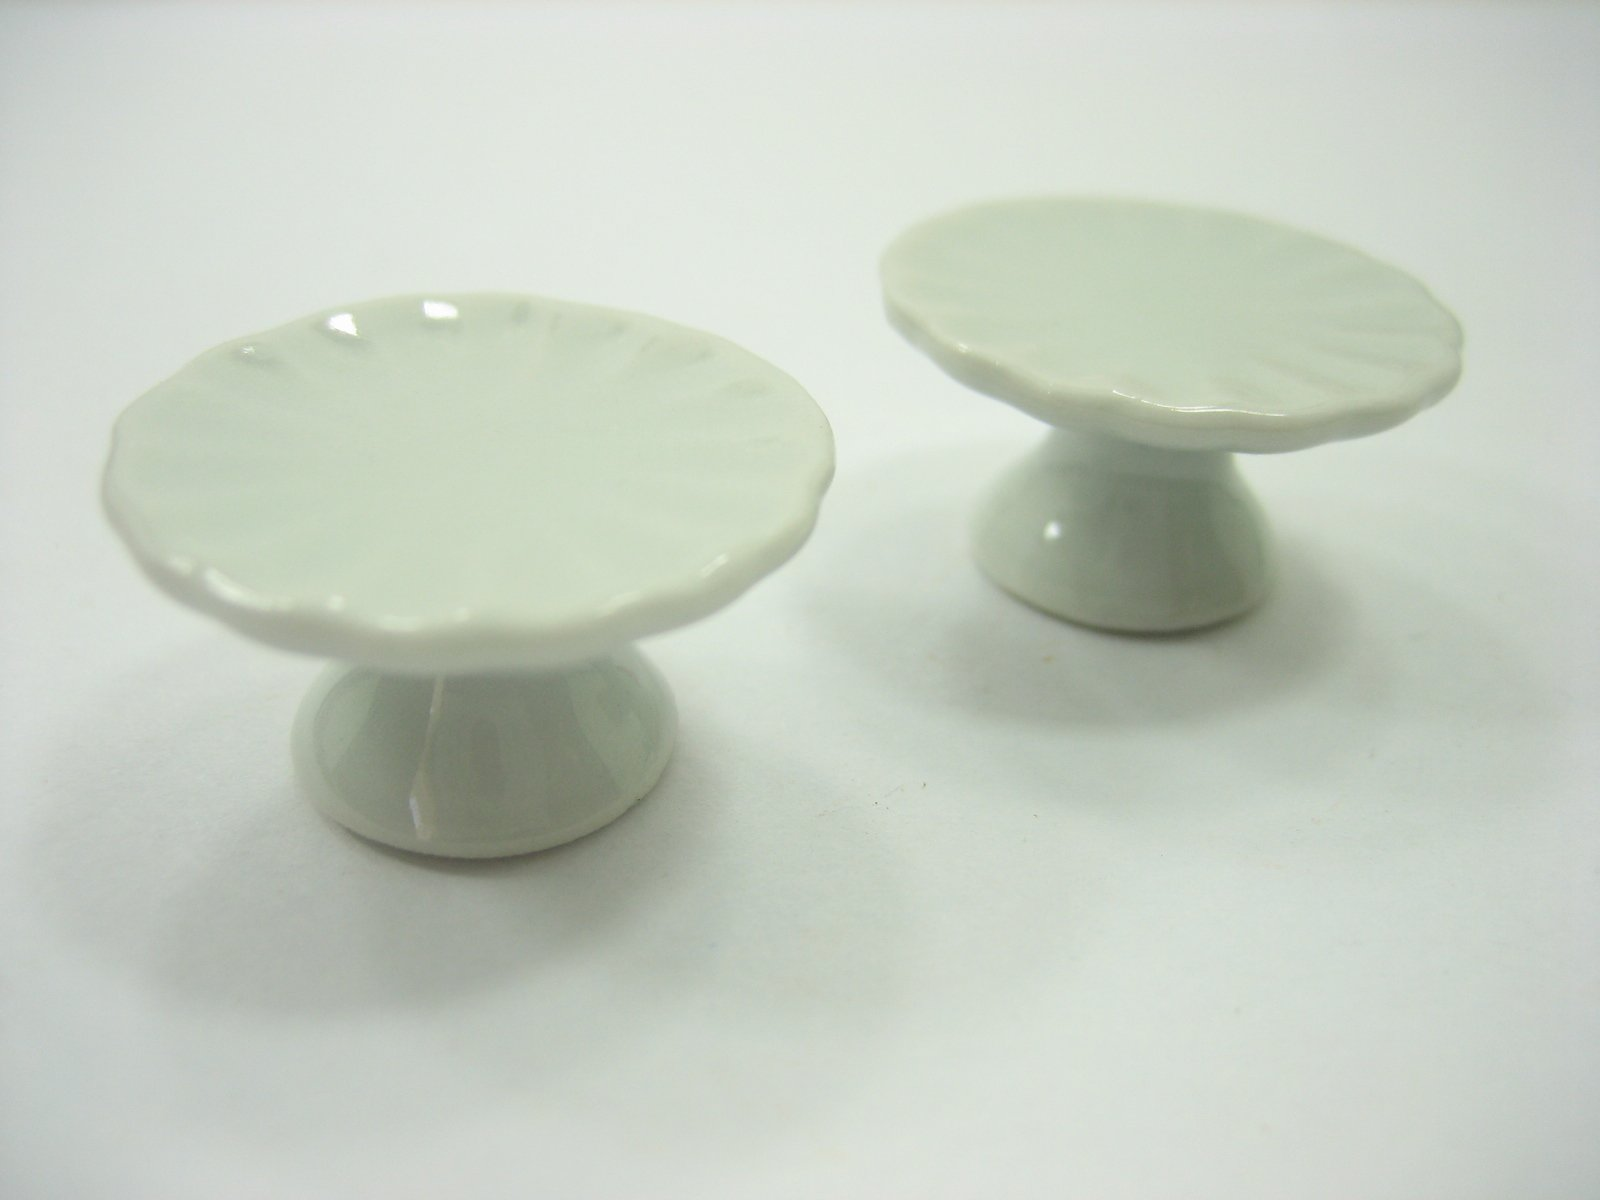 2 x27 mm White Cake Bakery Ceramic Stand  Dollhouse Miniatures Supply 10869